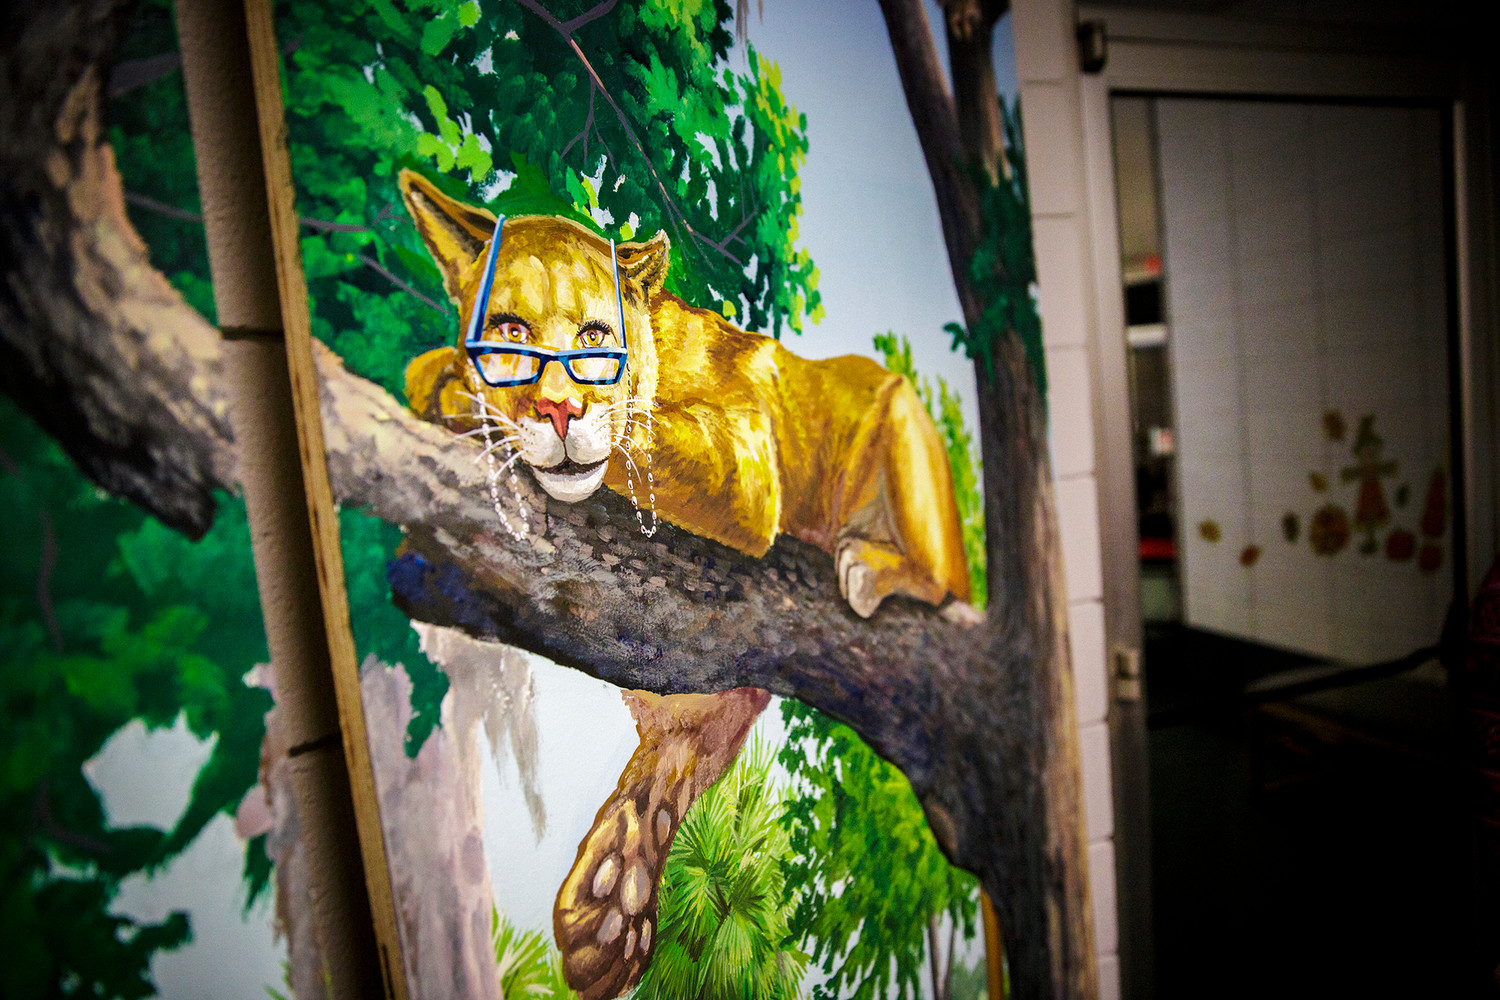 A vision-impaired Florida panther sits lazily on a branch on a mural painted by Jacksonville artist Anthony Rooney for the Green Cove Springs Library.